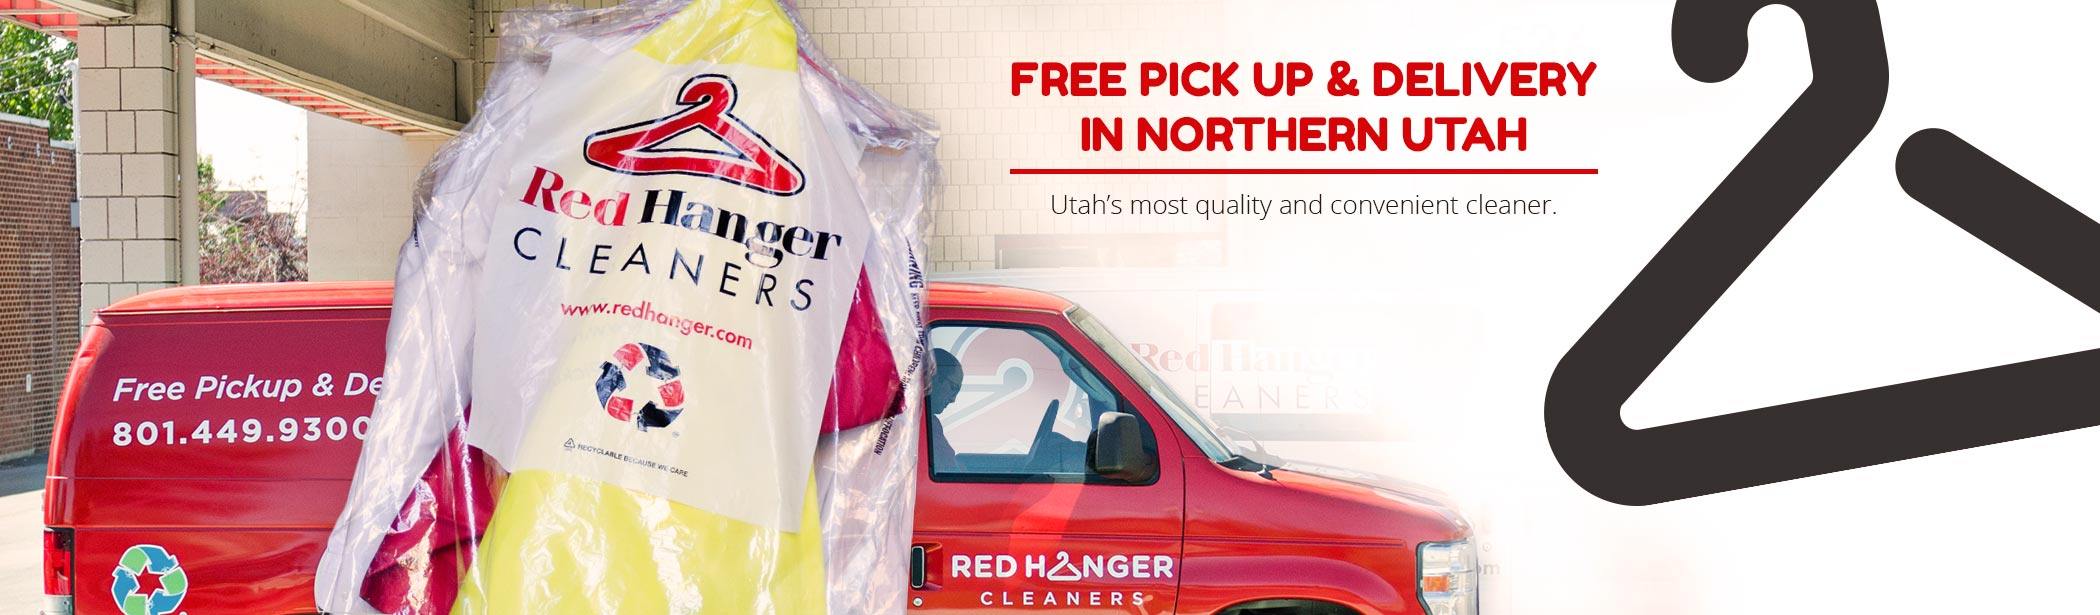 free pickup & delivery in northern Utah